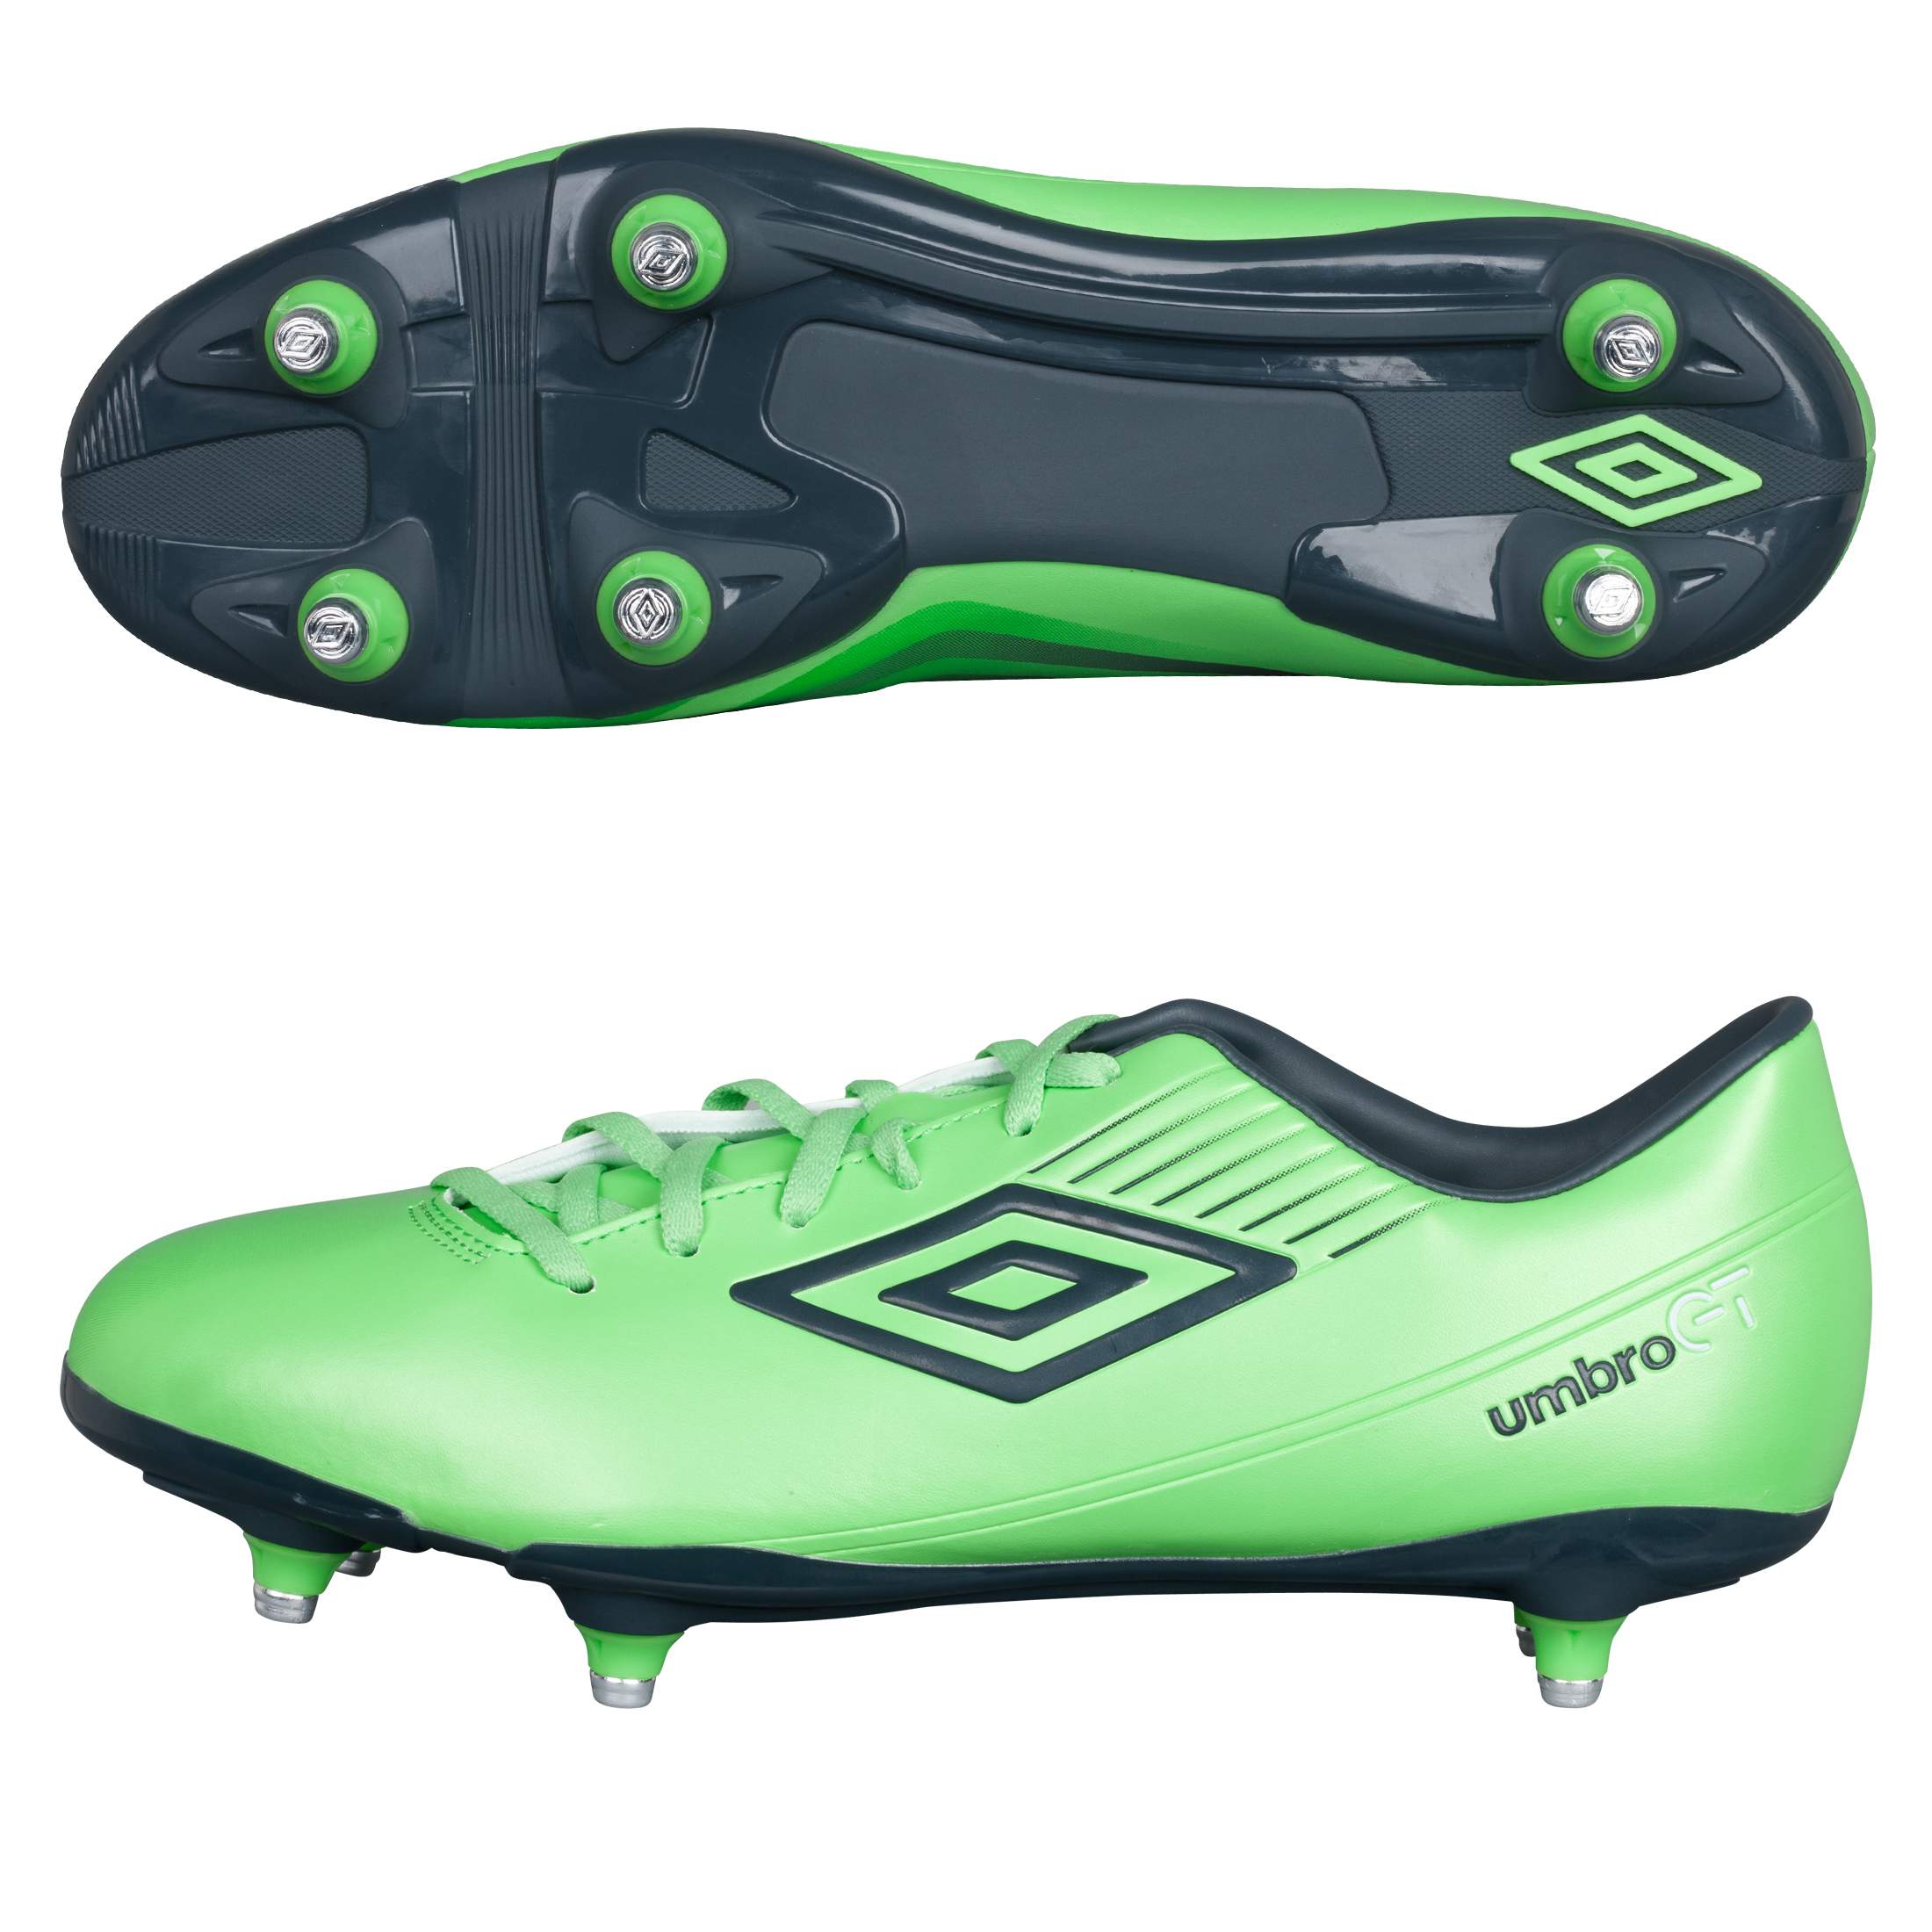 Umbro GT ll Cup Soft Ground Football Boots - Summer Green/Carbon/White